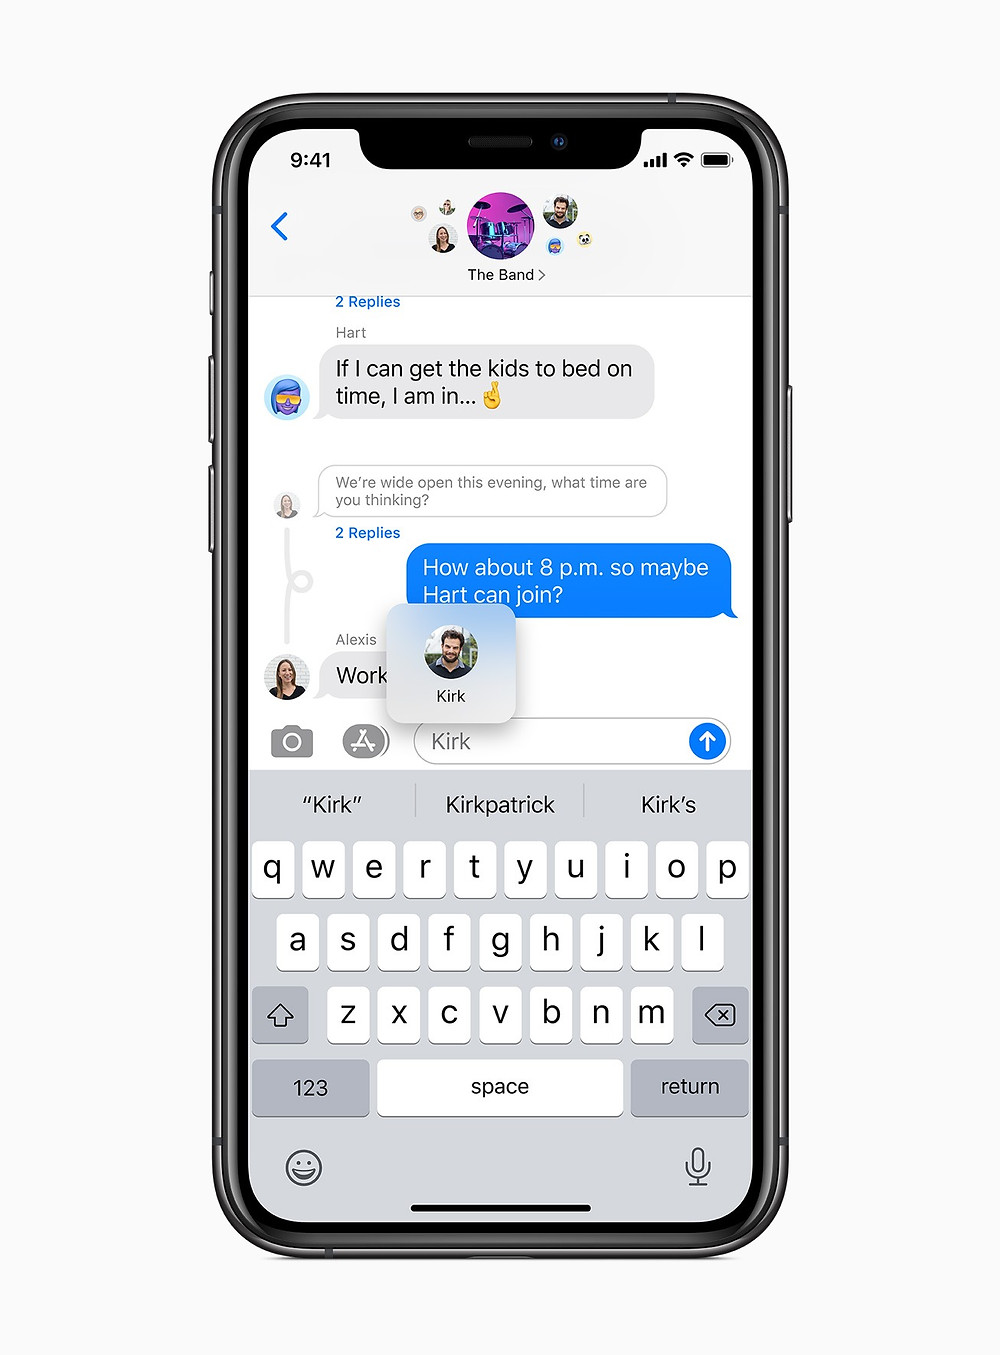 Pinned conversations come to Messages with iOS 14 in the fall.